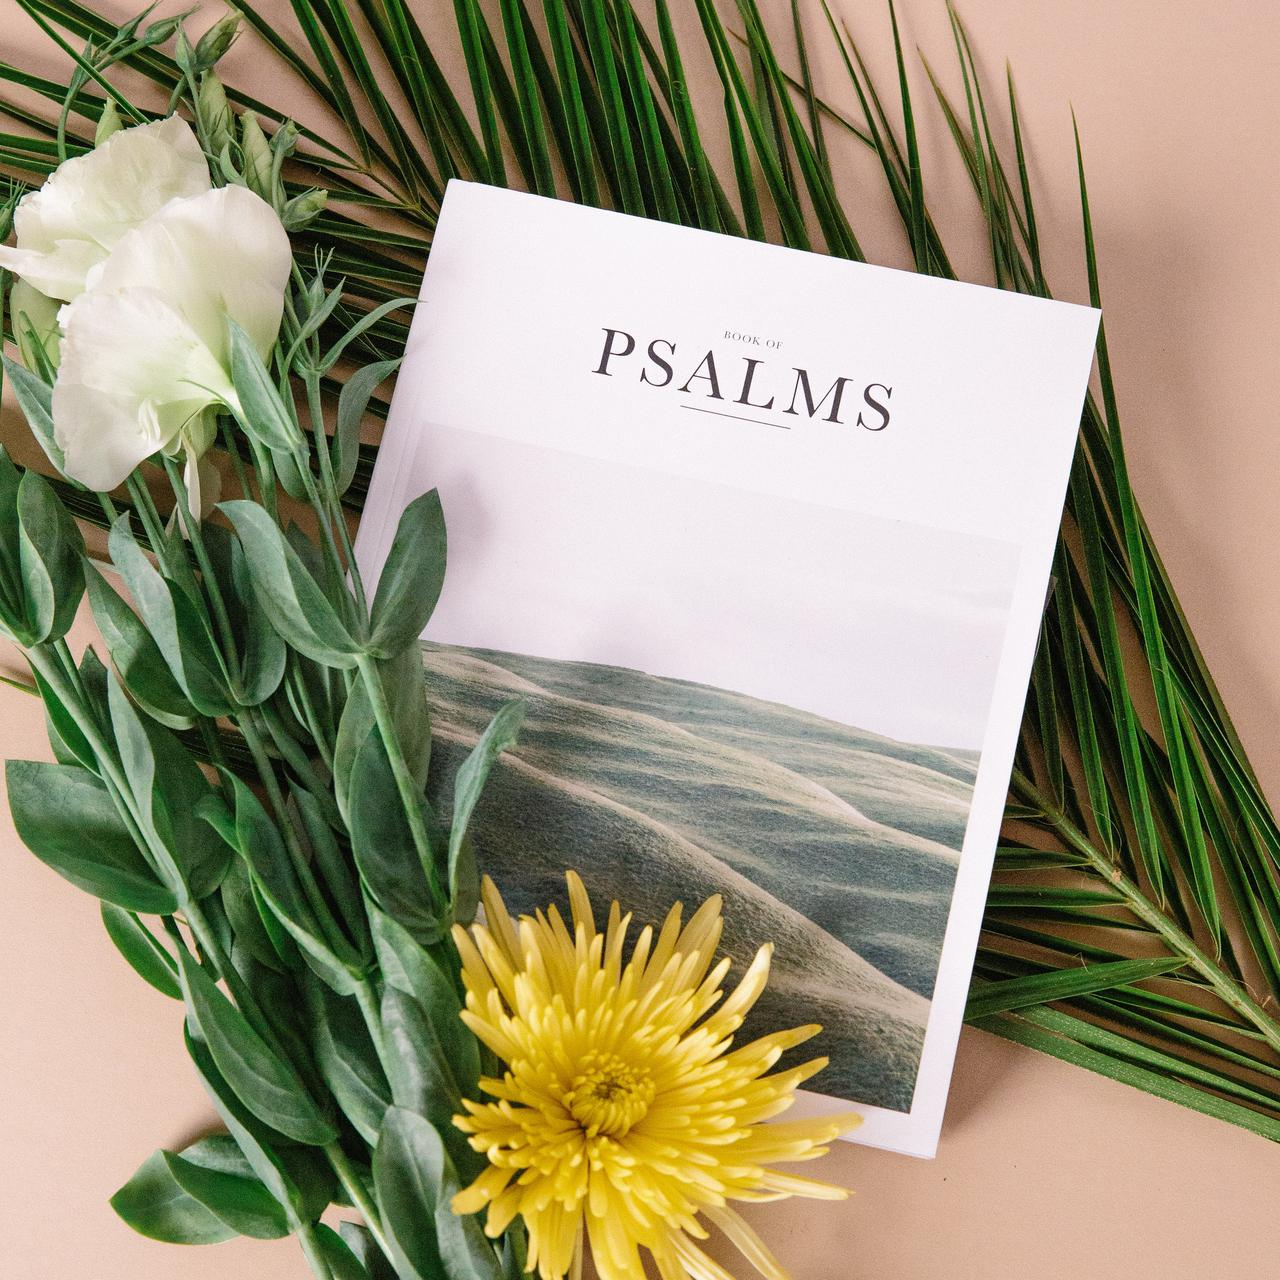 Book of Psalms with yellow and white flowers on tan background